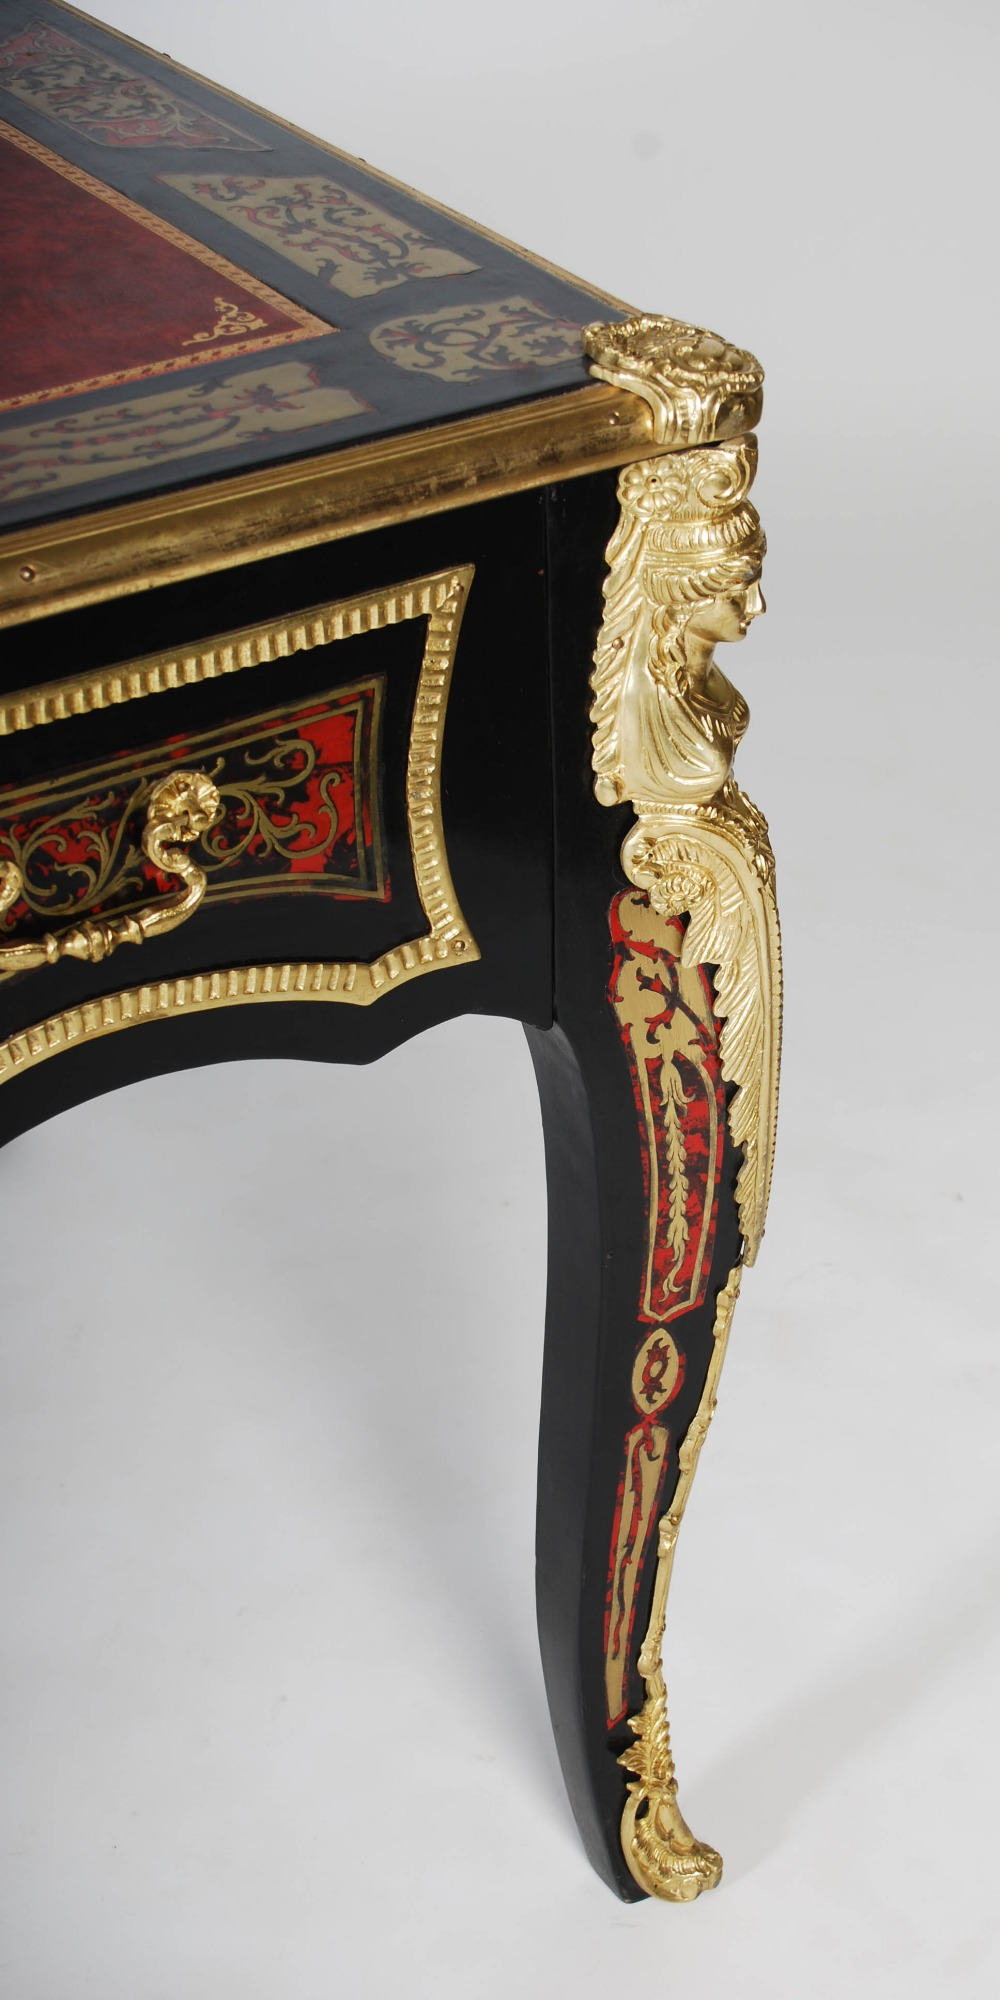 Lot 91 - A French ebonised and gilt metal mounted boulle work bureau plat, the rectangular top with red